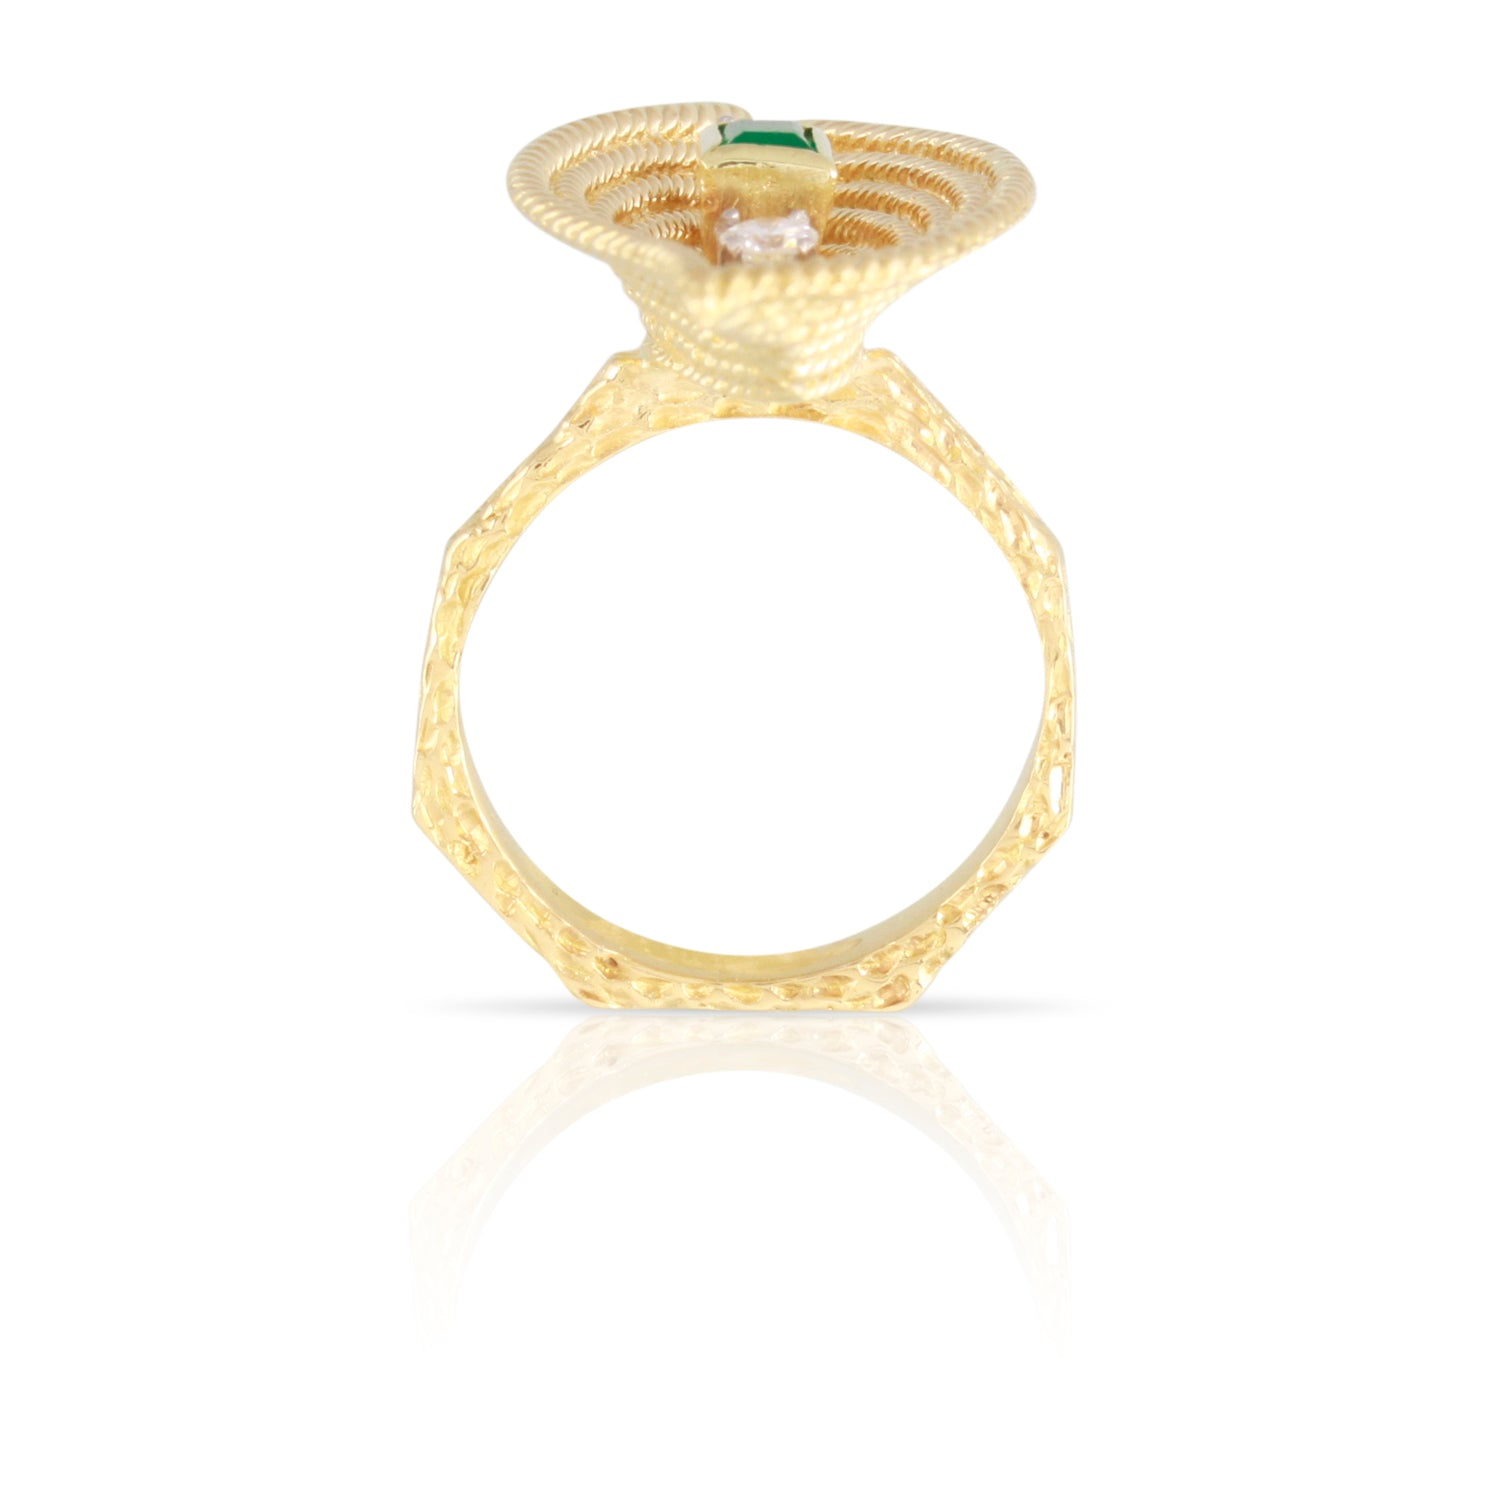 Mid-century Modern Diamond & Emerald Ring | The Georgia